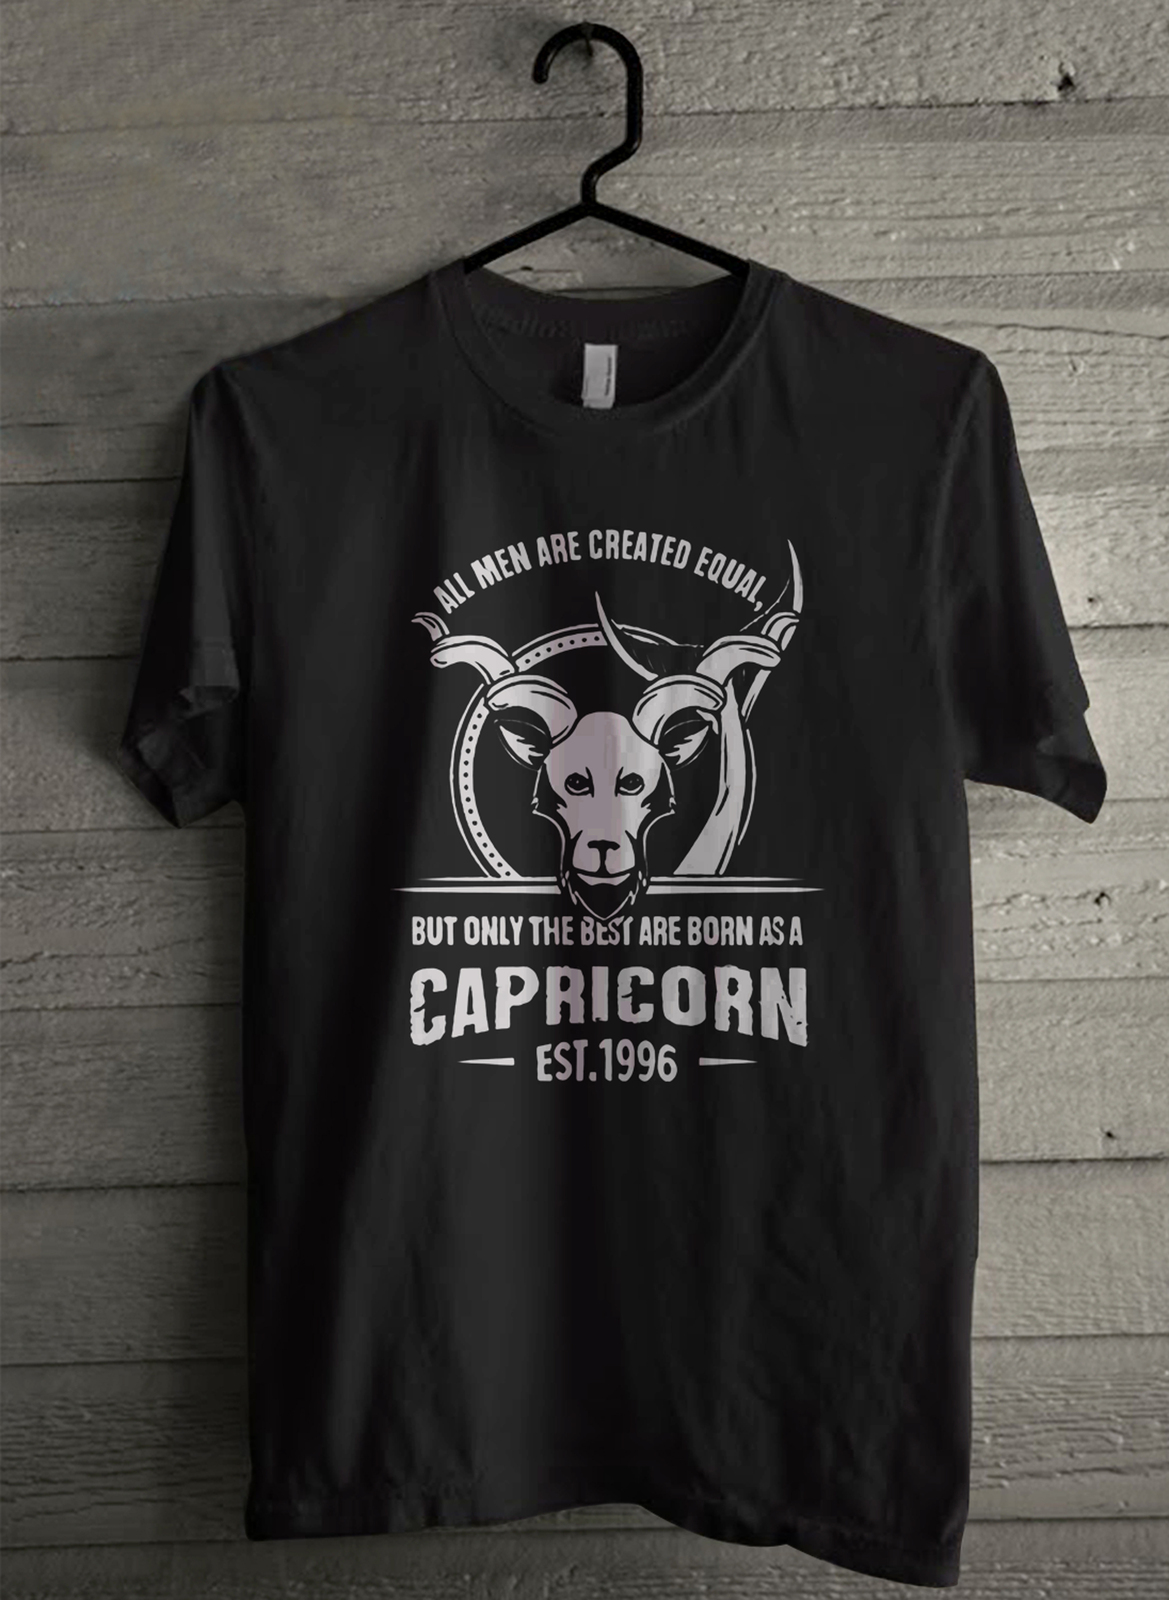 The best are born as a capricorn